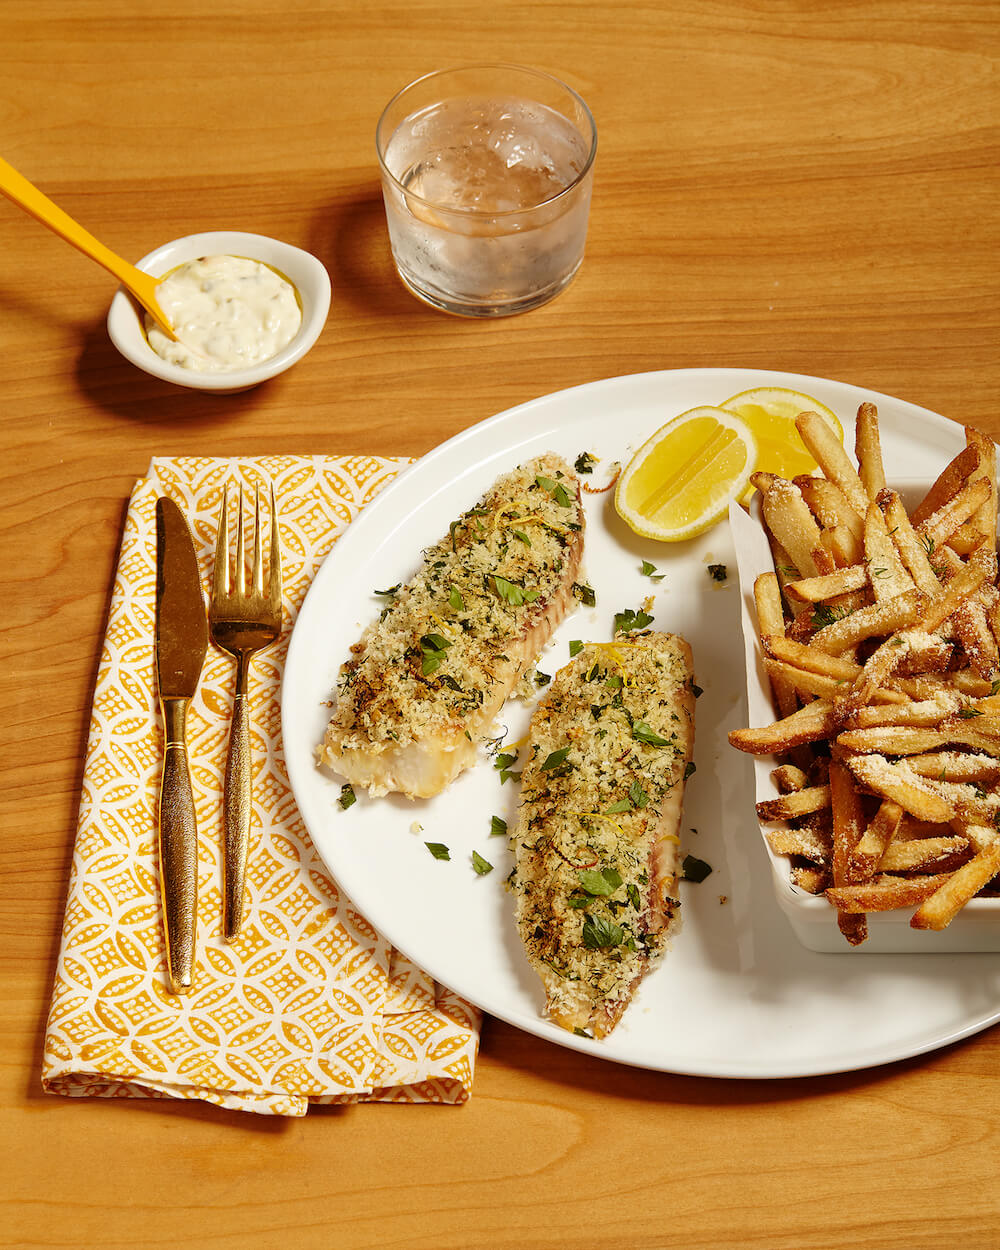 oven baked fish on a plate with crispy parmesan fries